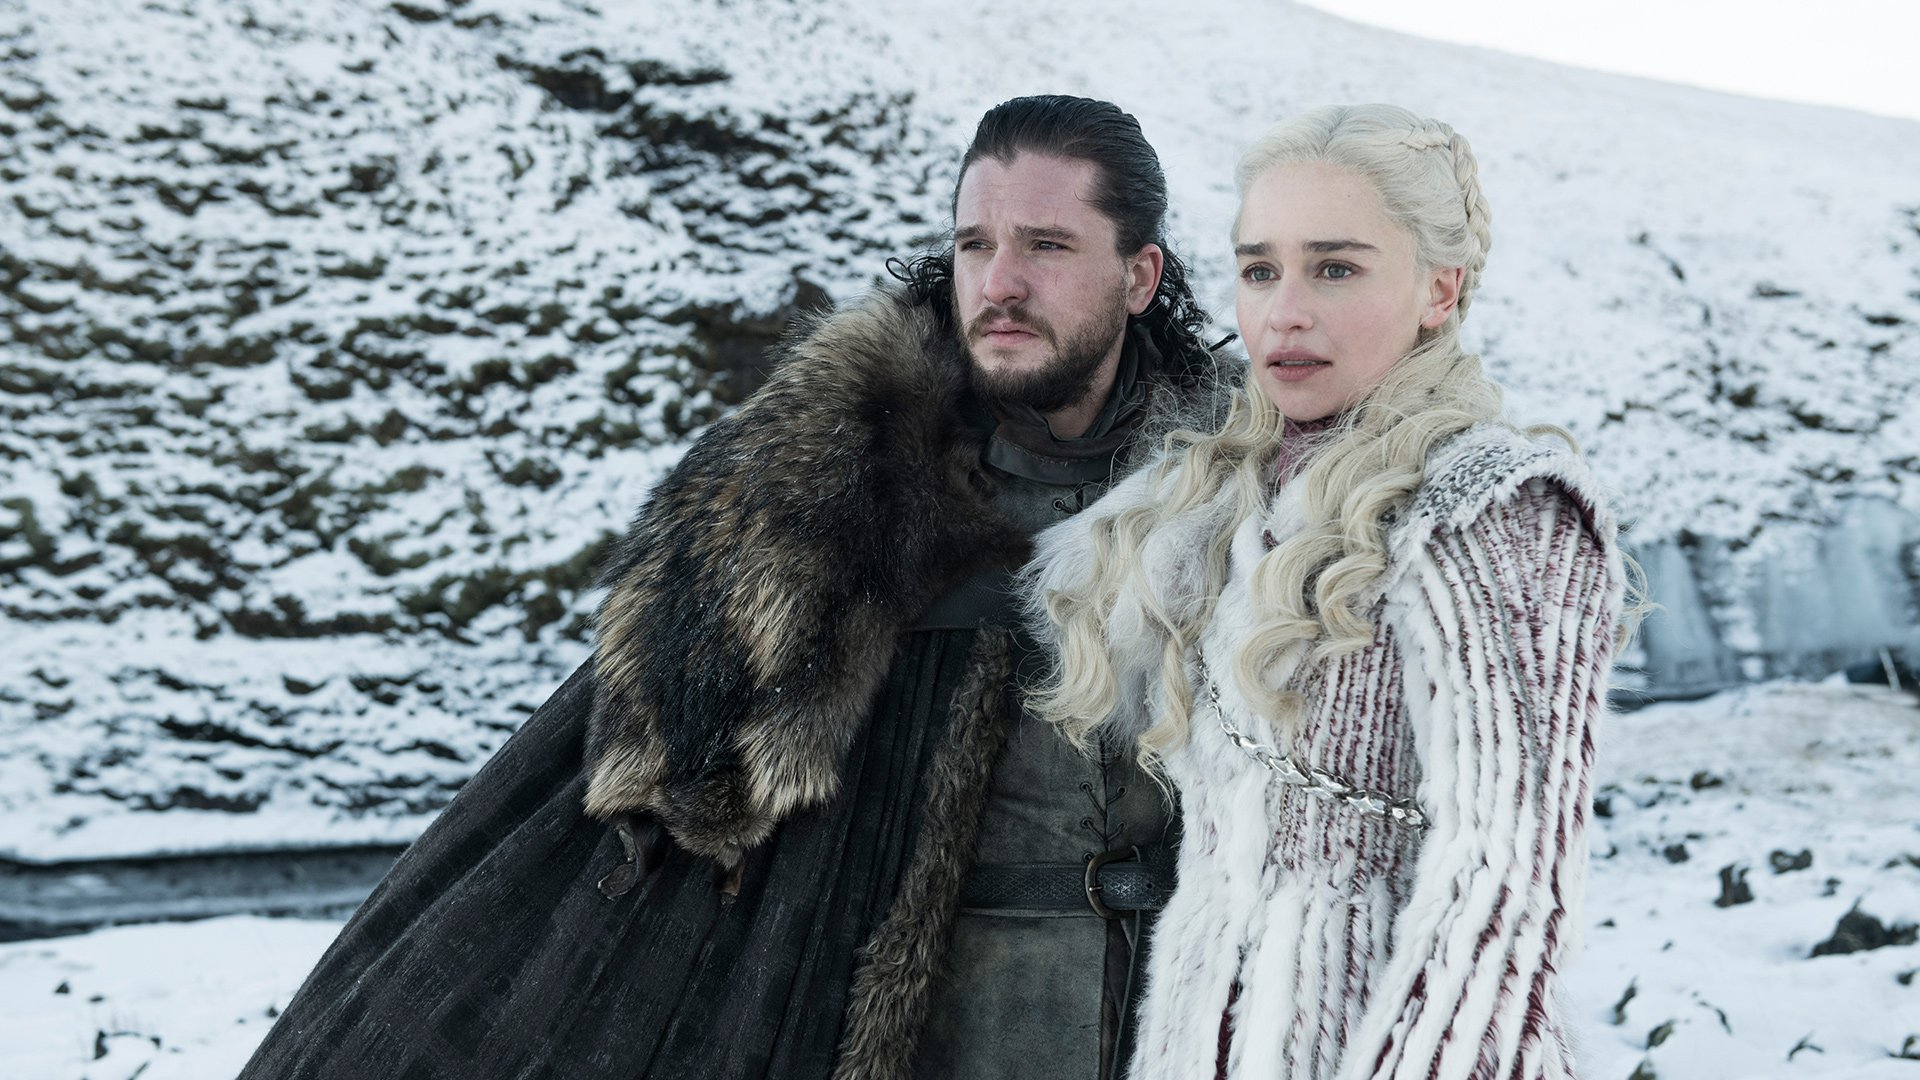 HBO drops brand new Game Of Thrones season 8 pics Credit: HBO